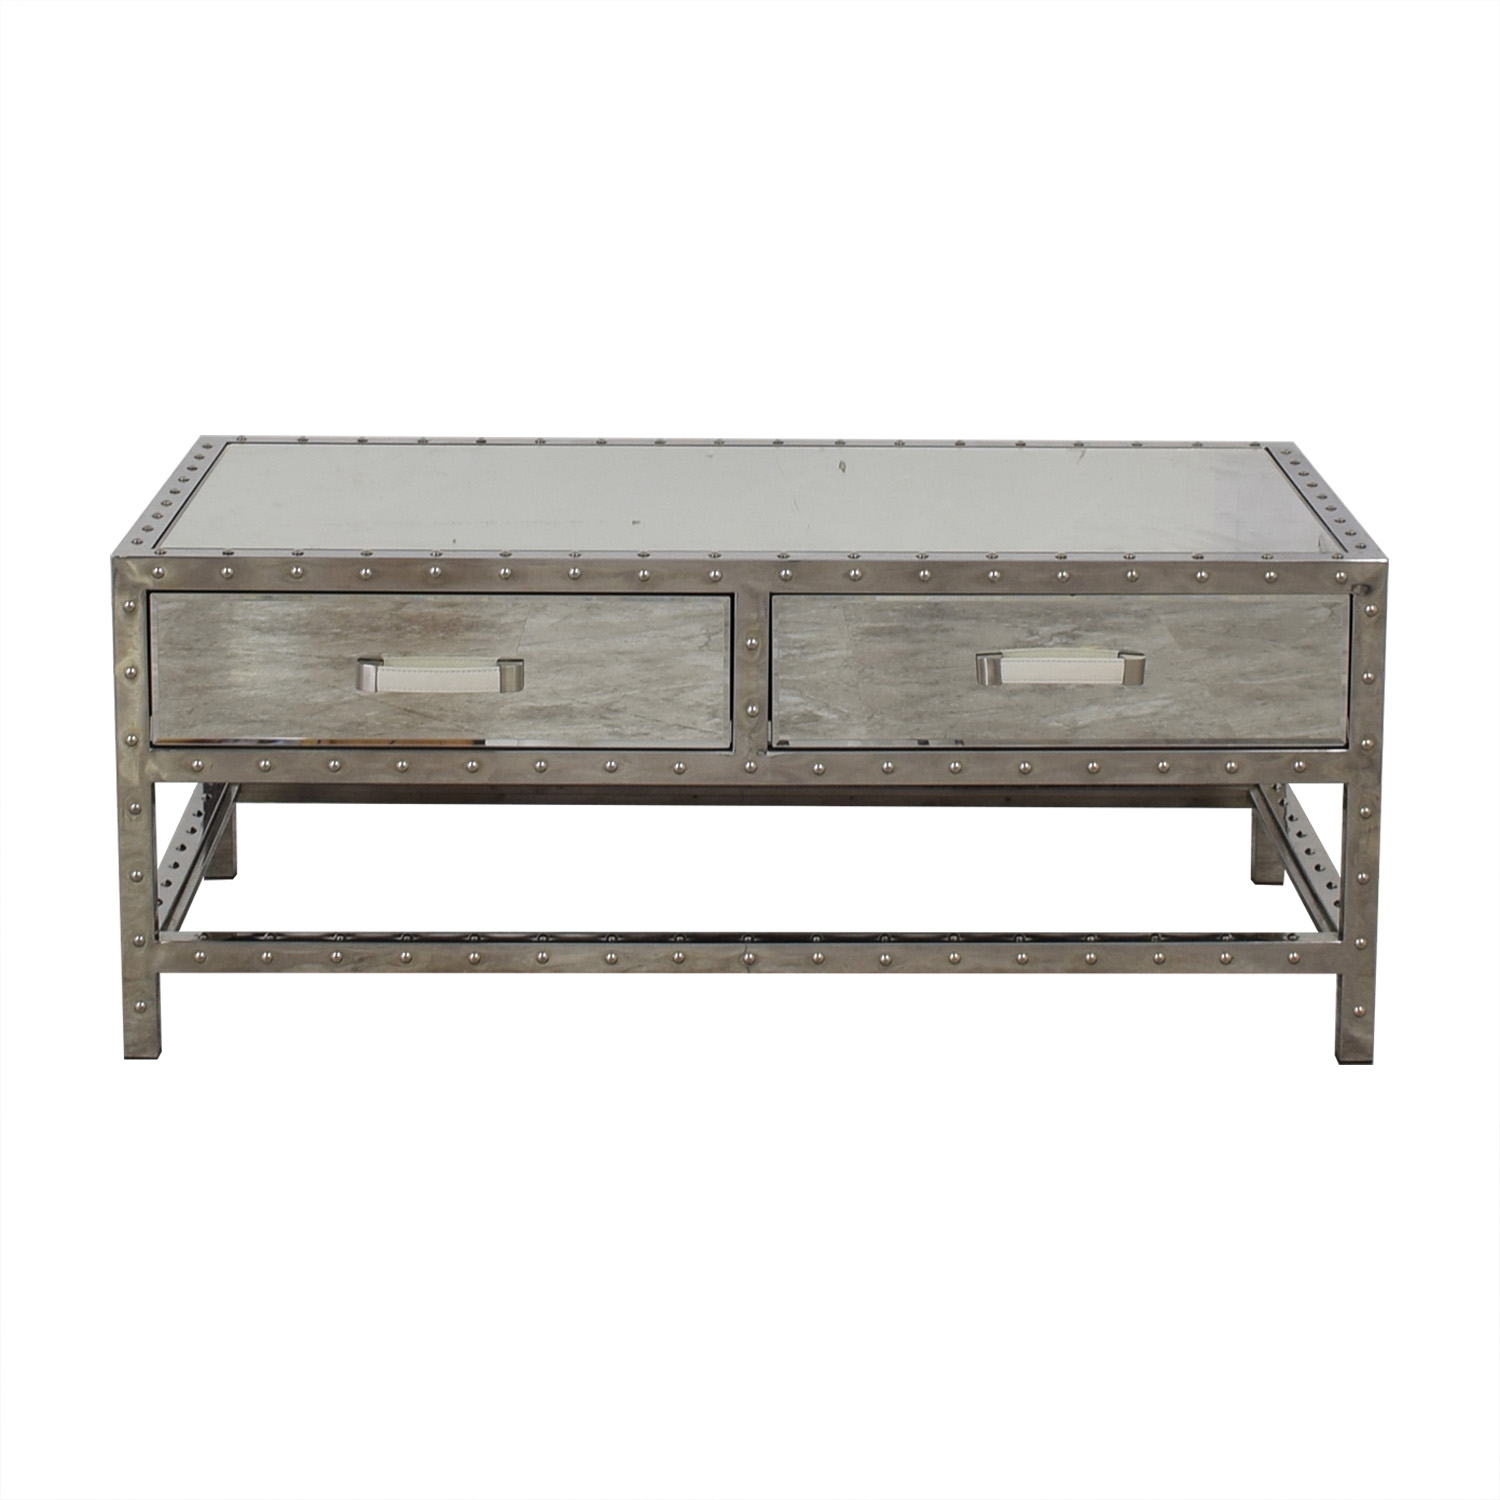 Modani Modani Valentino Mirror and Chrome Coffee Table for sale